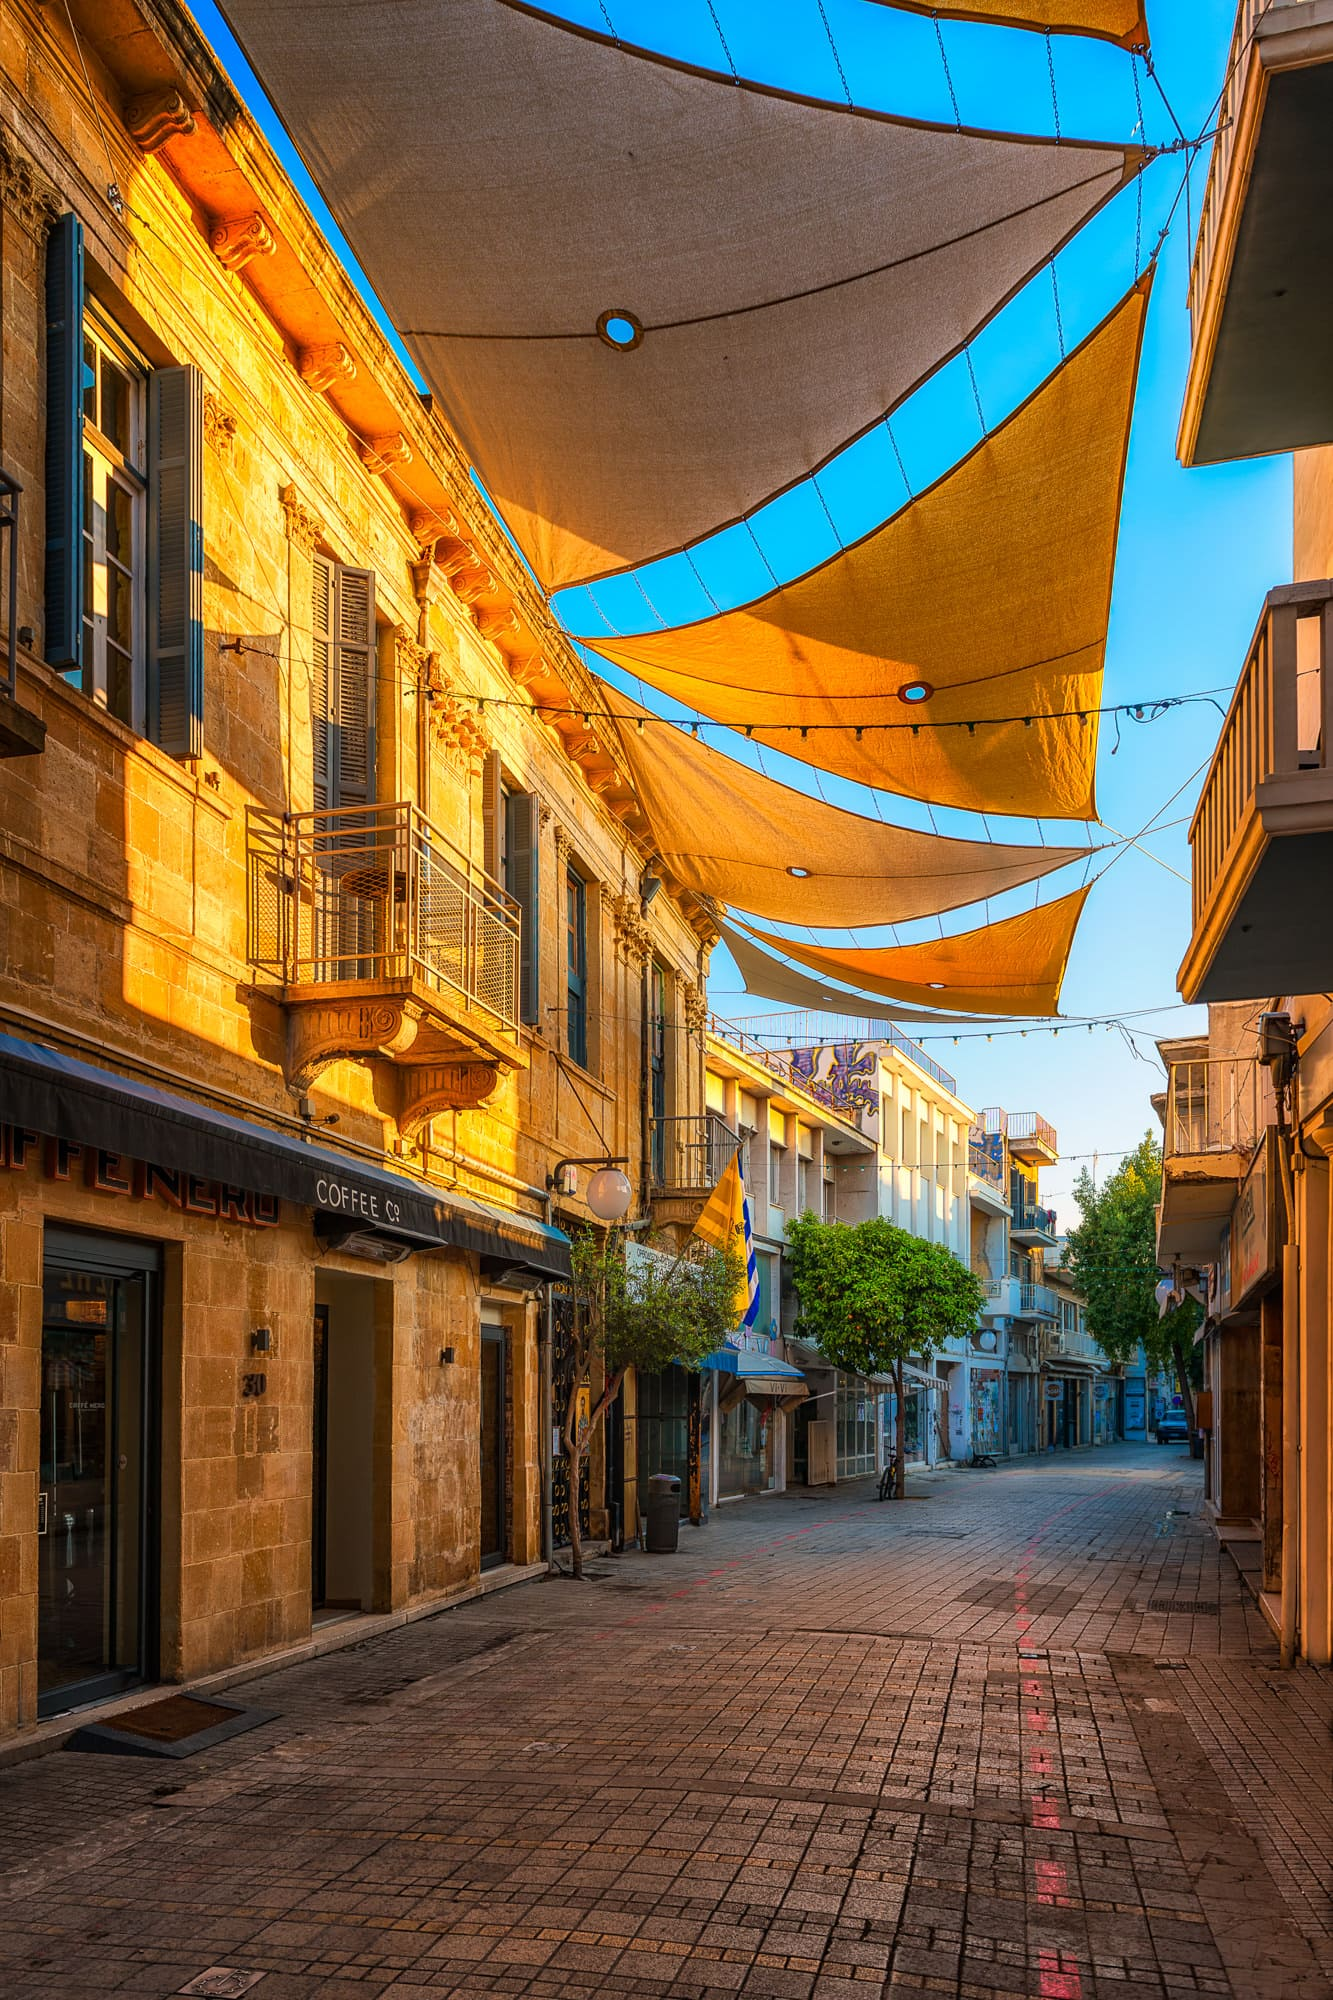 Ledra Street in the Centre of Nicosia, the Capital of Cyprus.